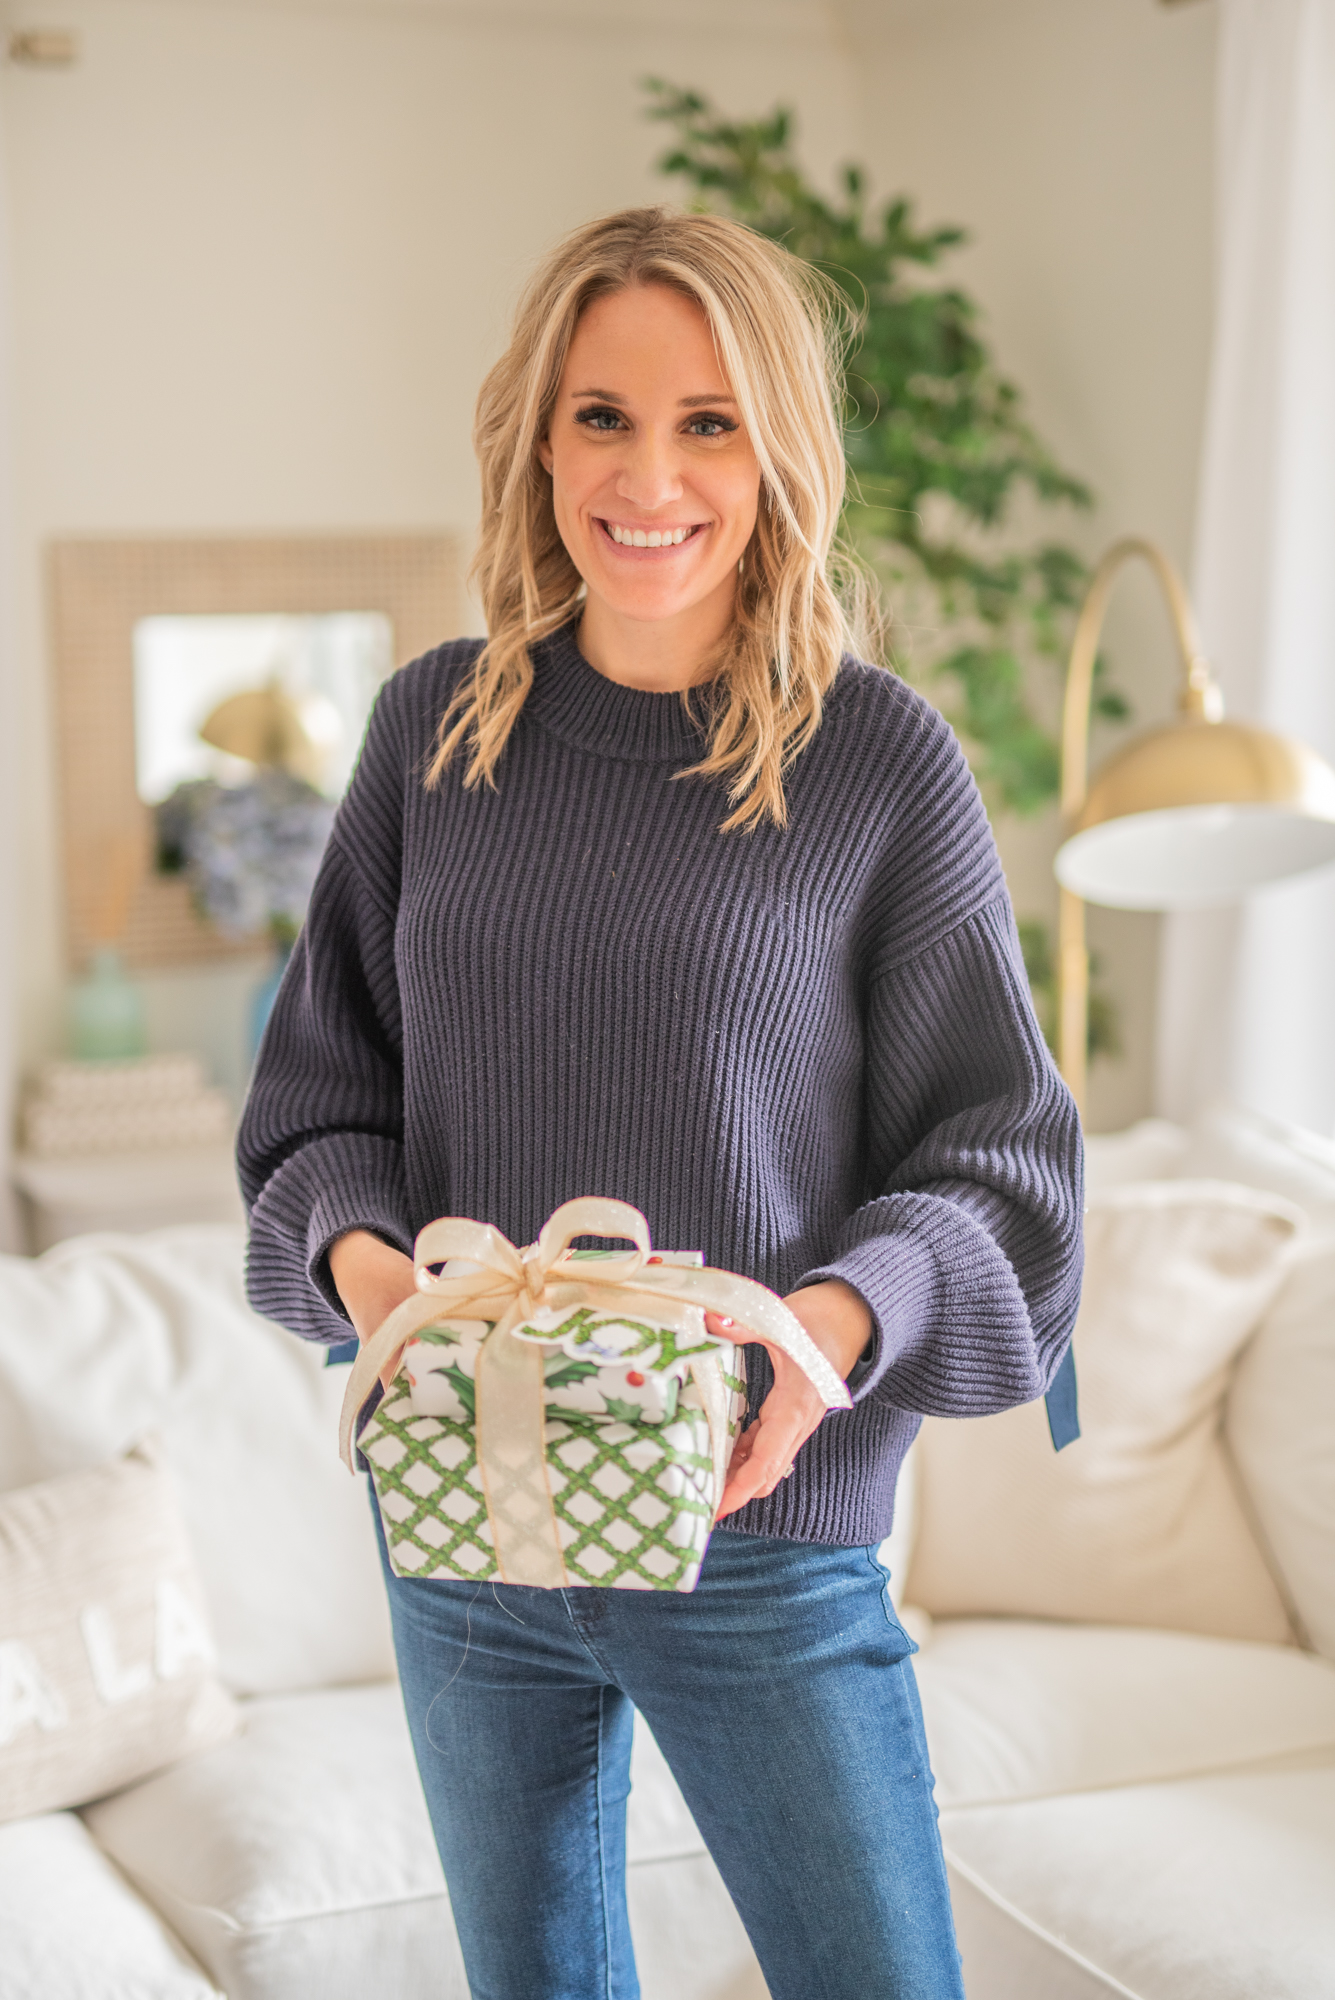 woman holding wrapped christmas gifts | Gifts Under $50 by popular Michigan lifestyle blog, The House of Navy: image of a woman wearing a blue sweater and pair of jeans and holding a wrapped present.